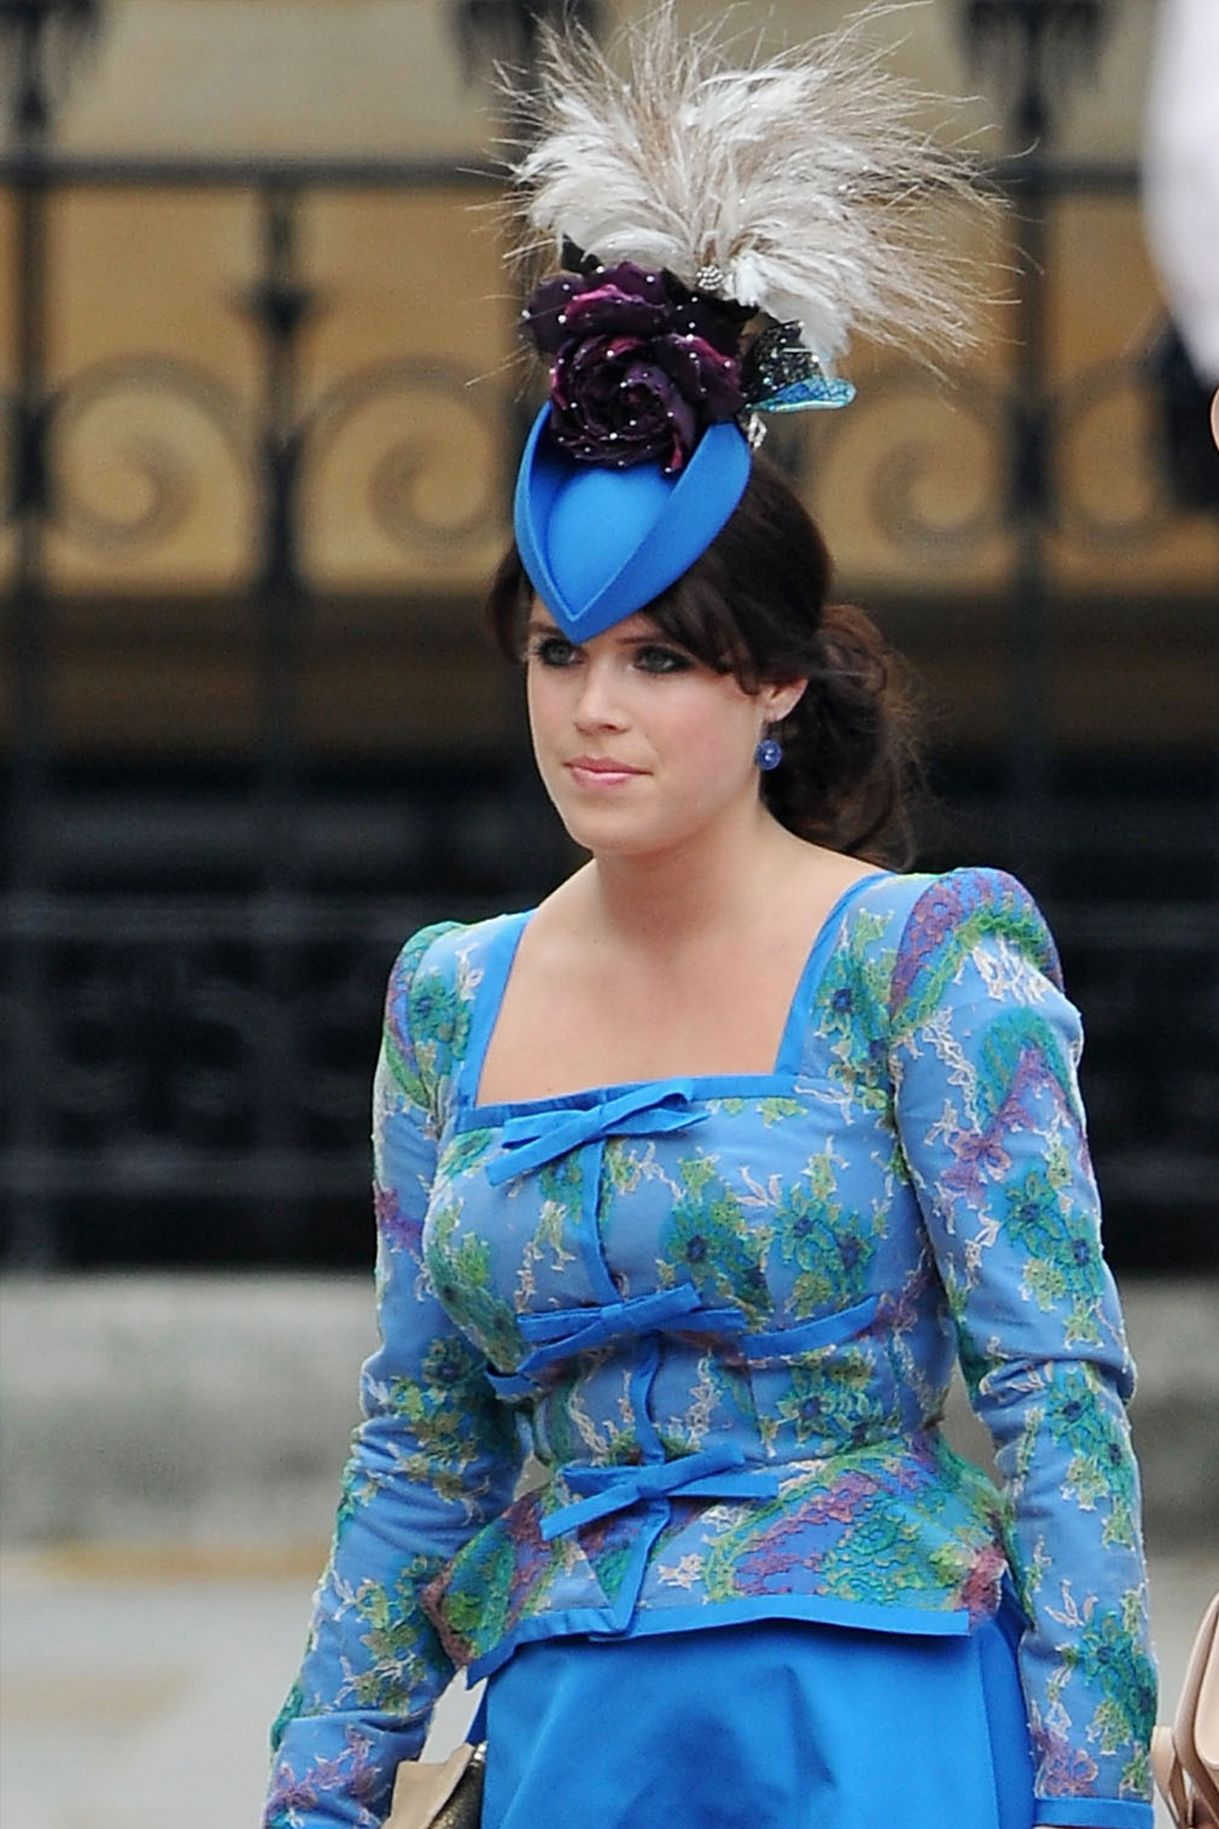 b7ce107ac1b59 The Craziest Royal Wedding Hats of All Time